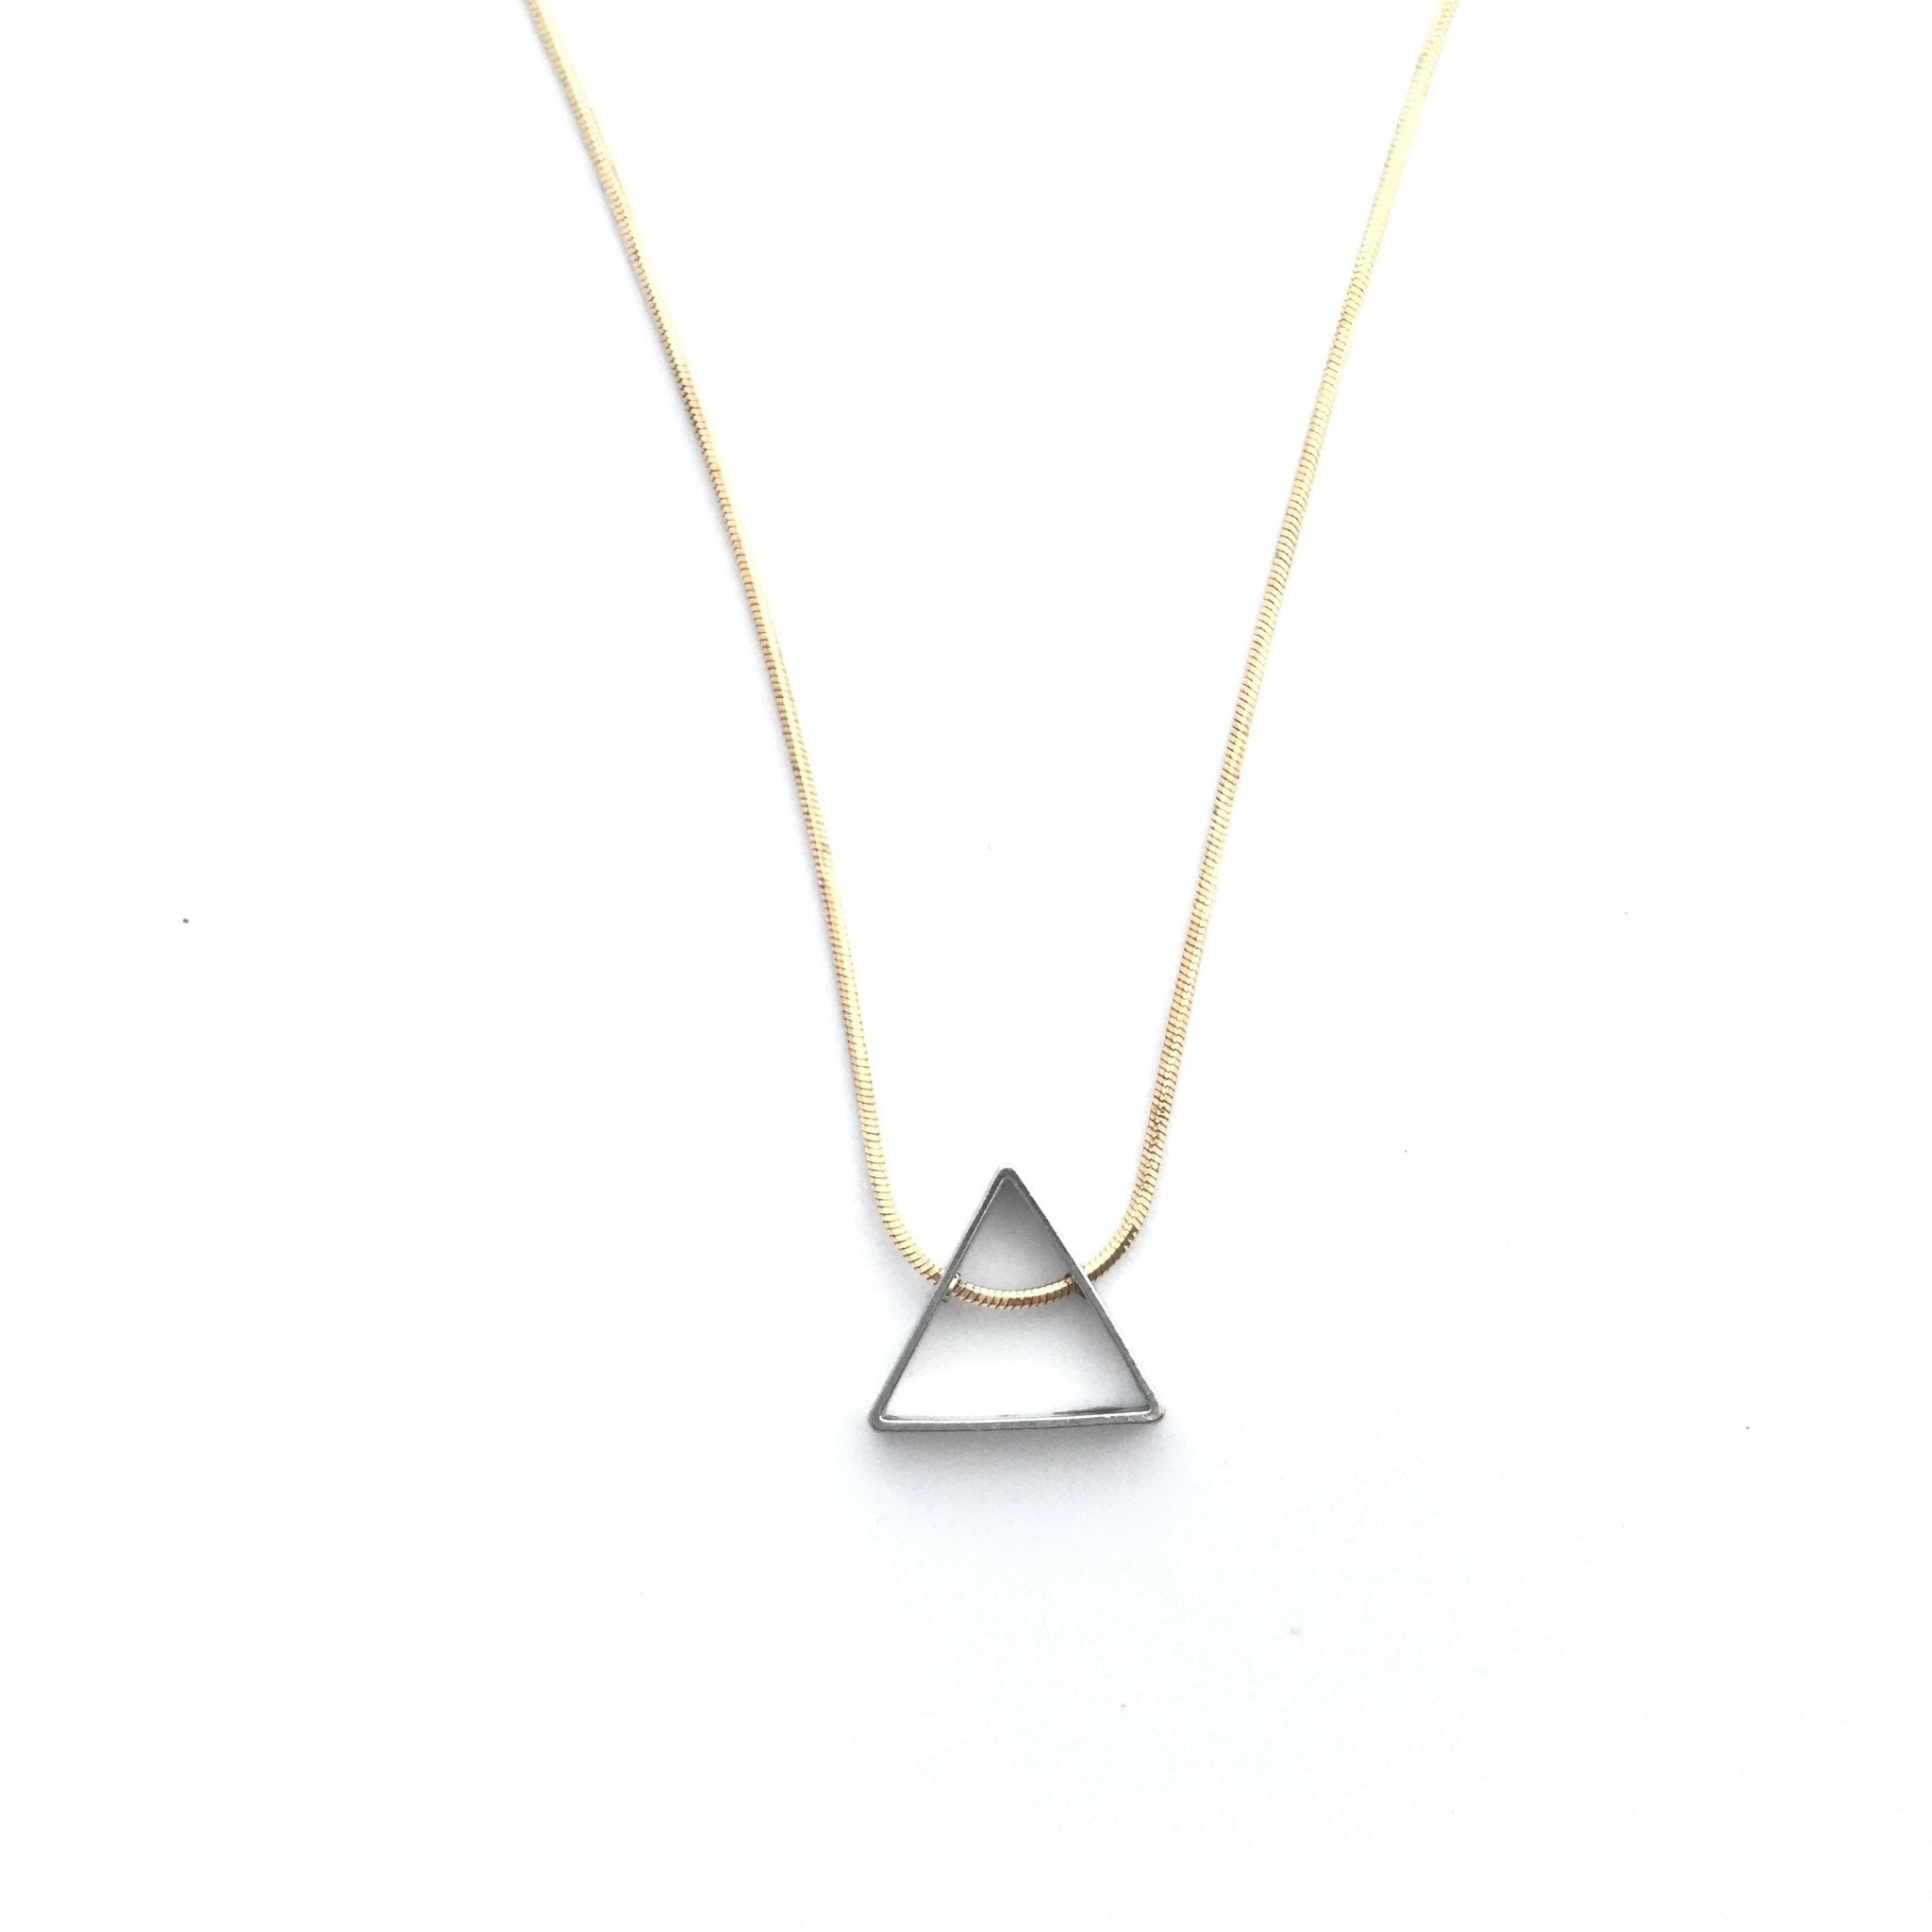 Rebekah Vinyard Jewelry - Simply Tri Necklace